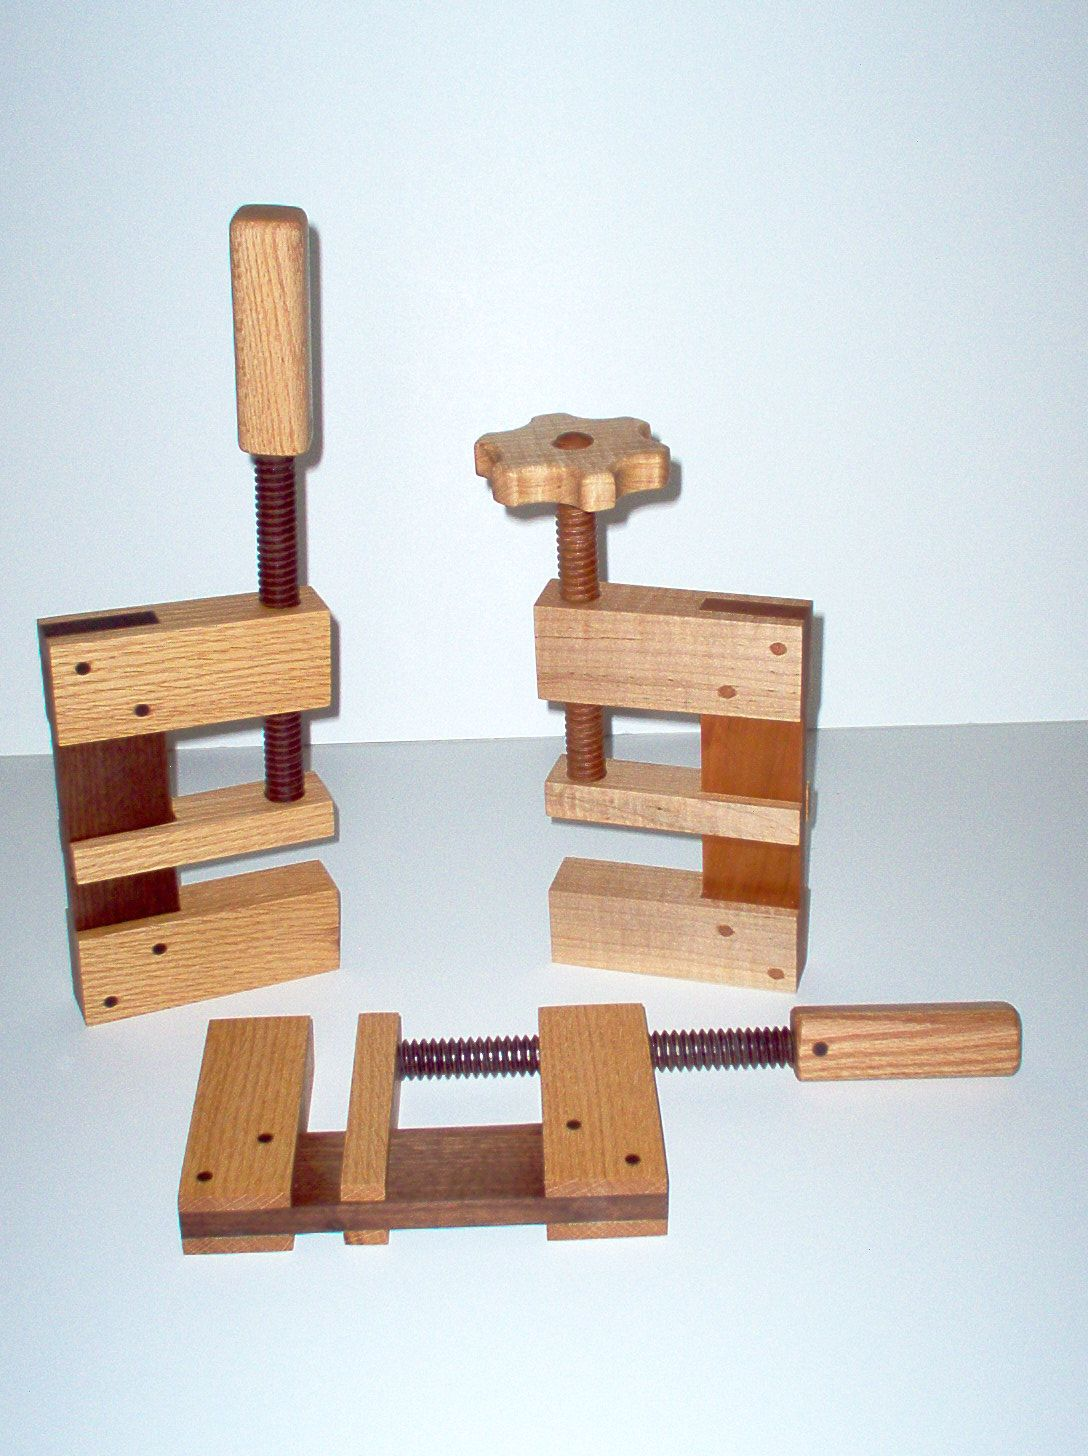 Wooden C Clamps Yes They Work Can Be Made From Metal Will Post